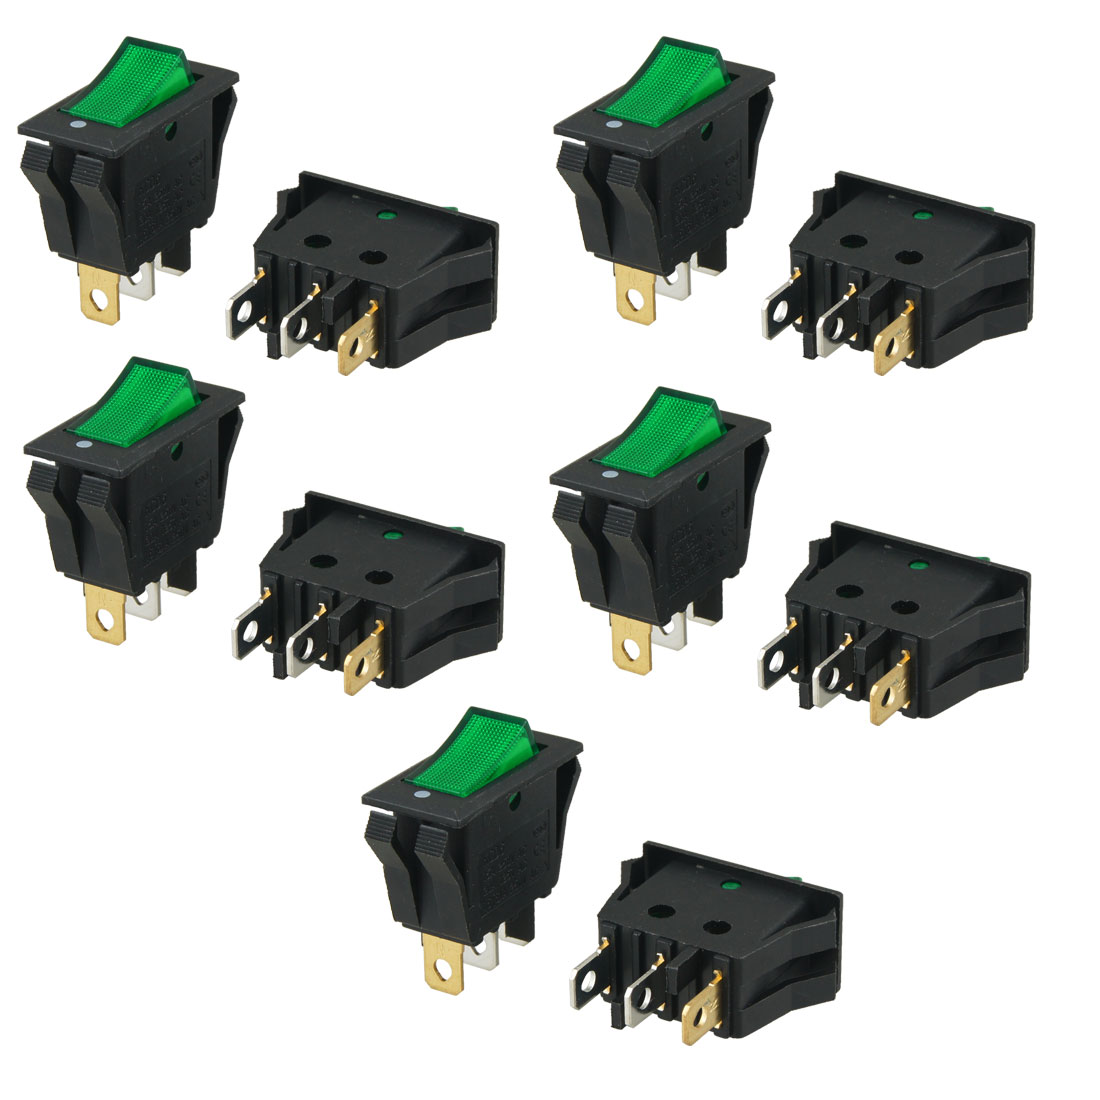 10 Pcs AC 250V/15A 125V/20A Green Indicator Light 3 Pin ON OFF Rocker Switch